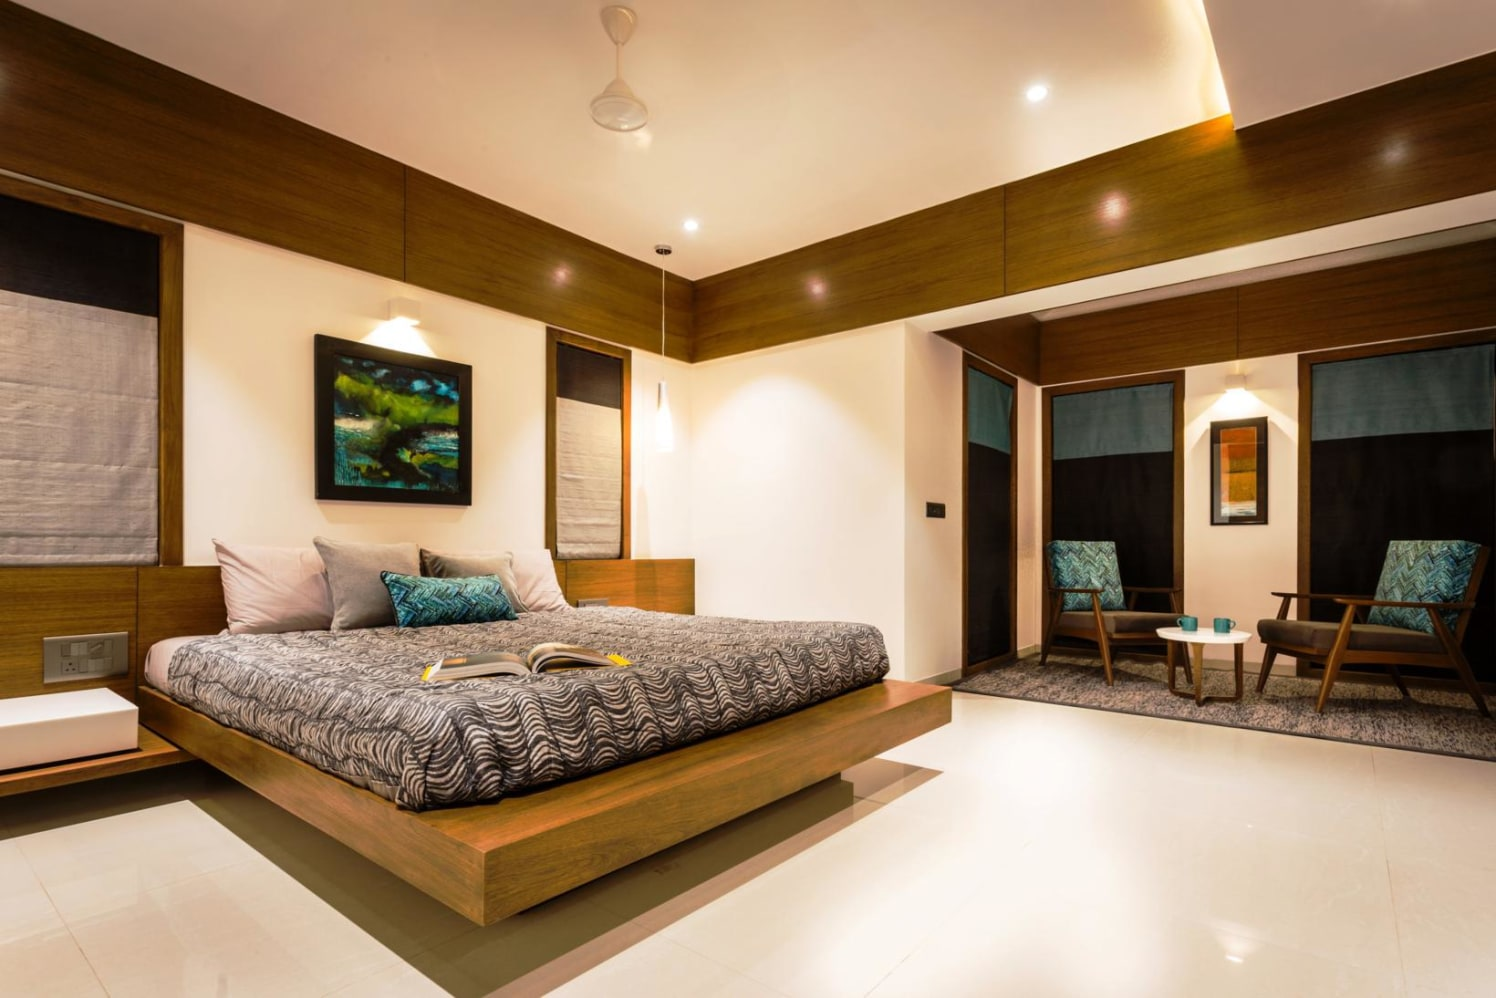 Bedroom With Wood Finish Ceiling by Ankur Tulsyan  Bedroom Modern | Interior Design Photos & Ideas